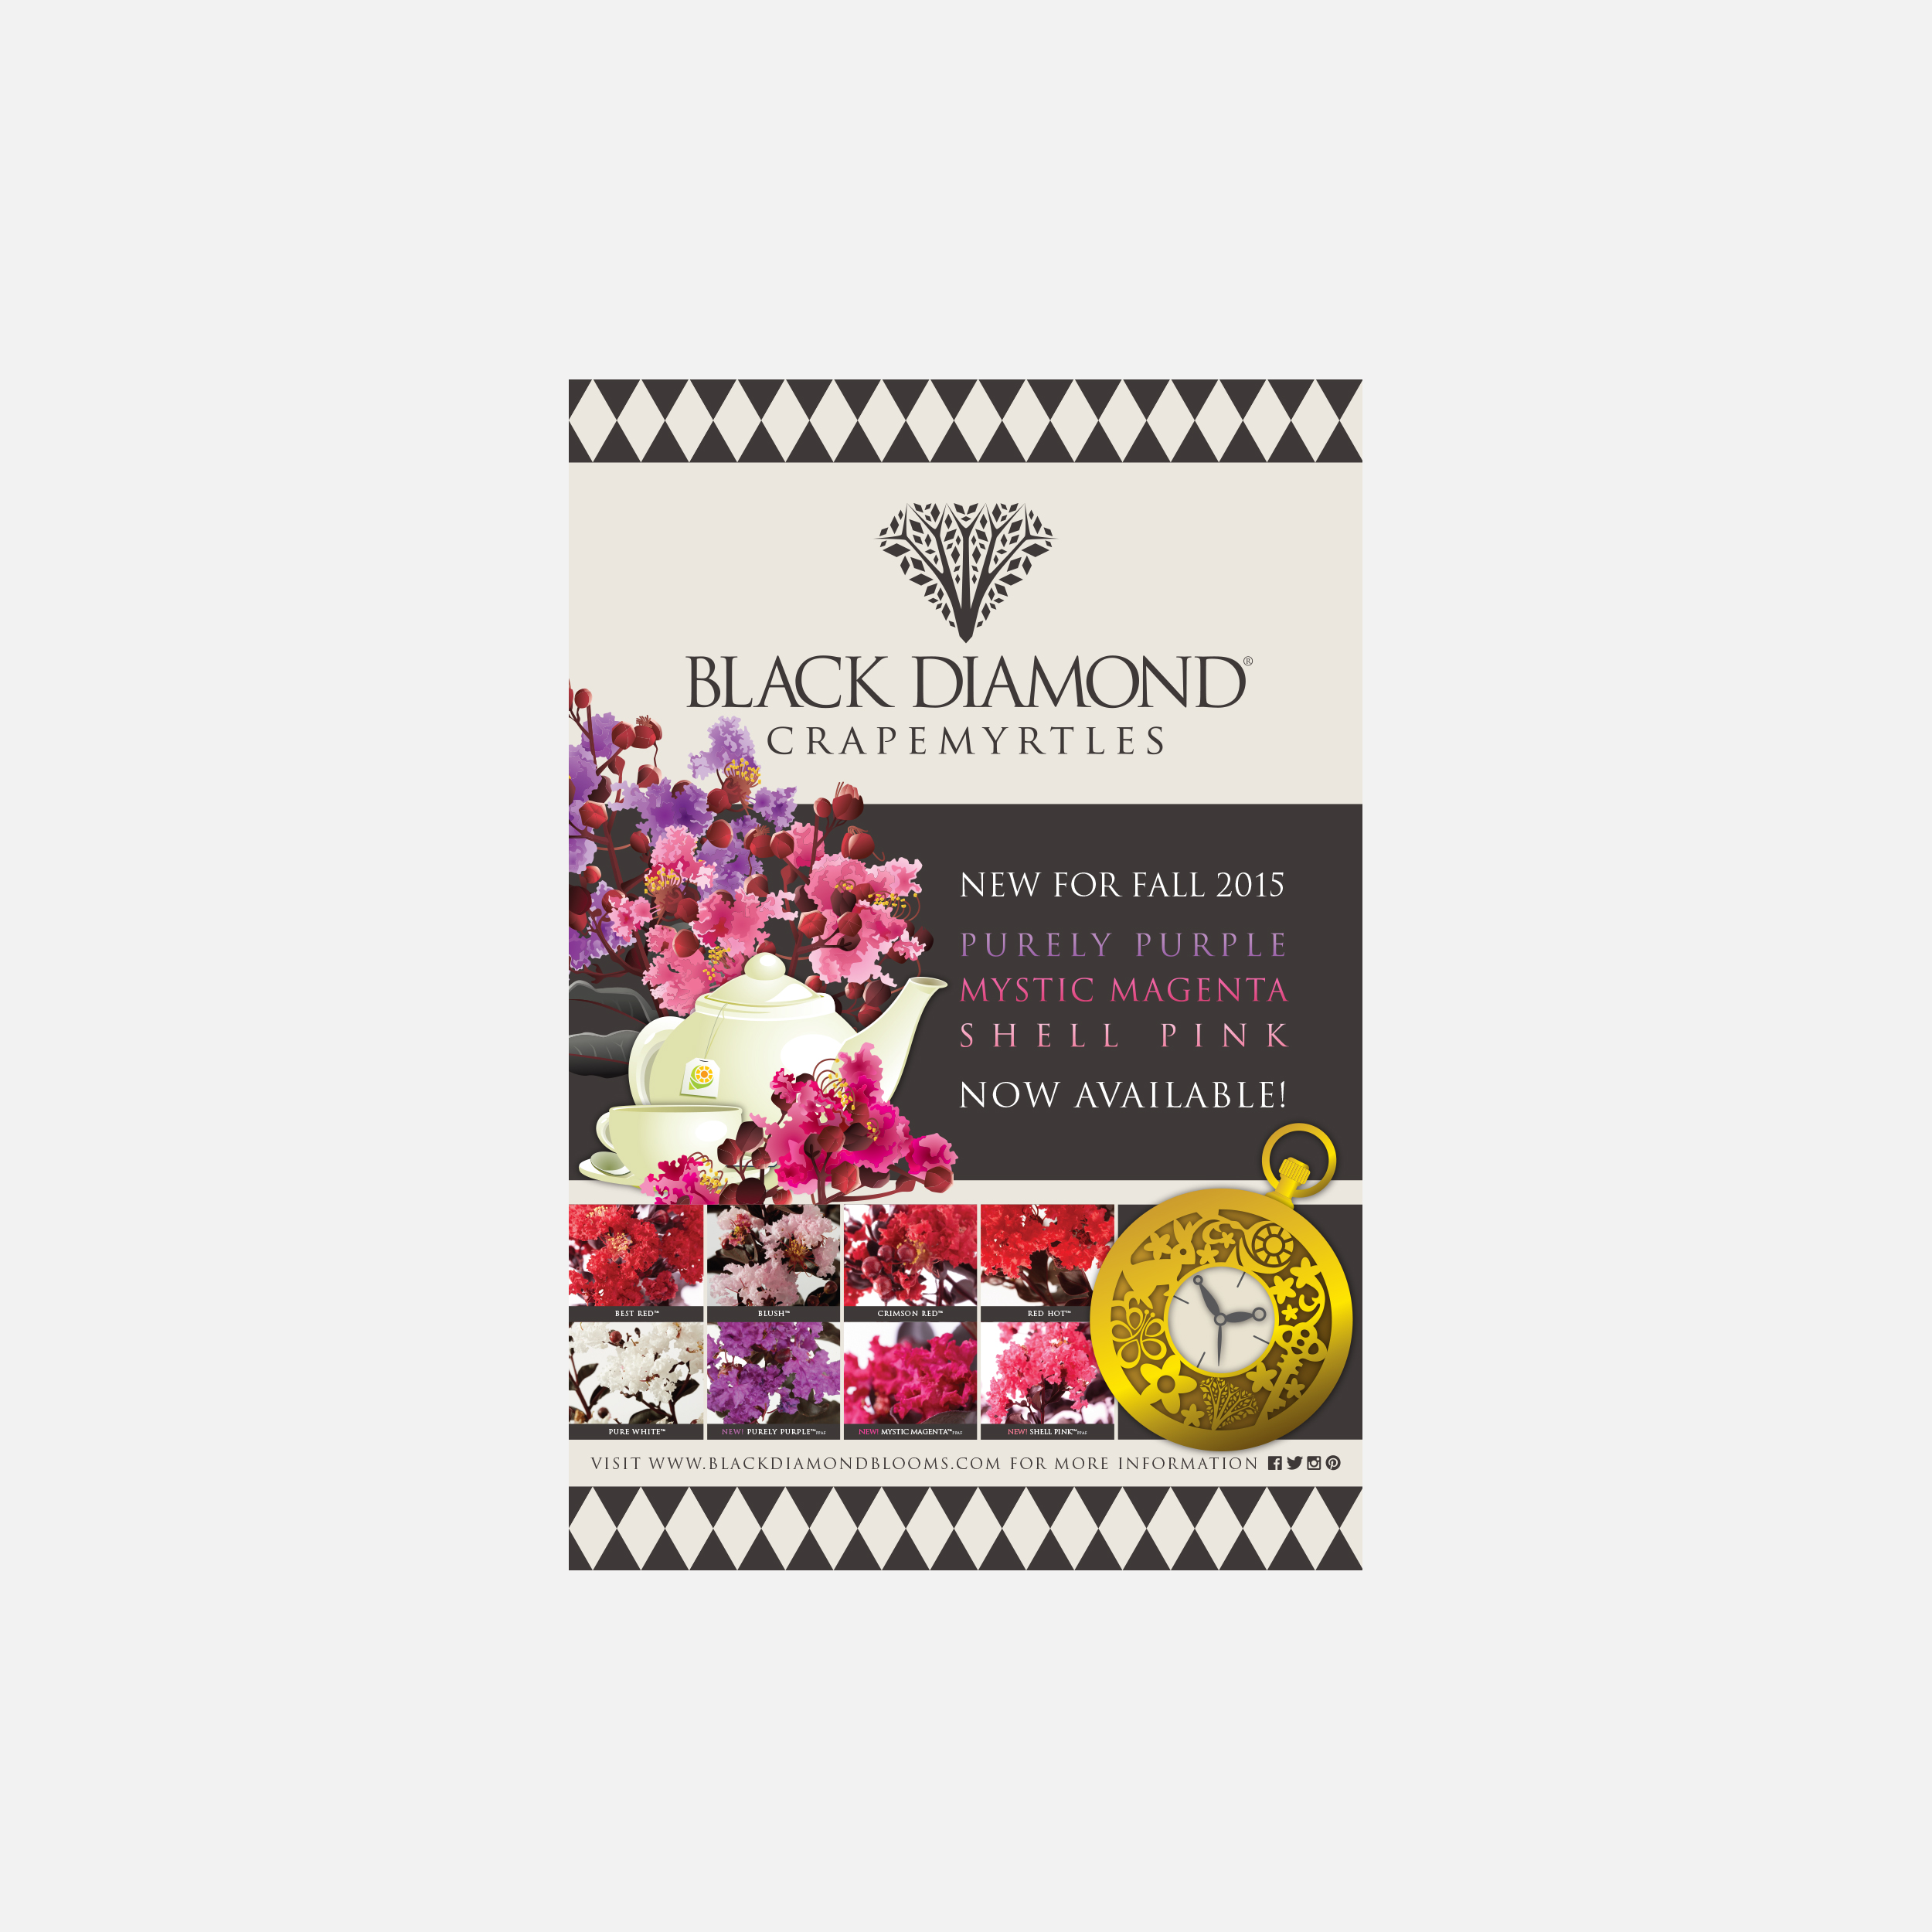 Black Diamond Crapemyrtles trade show poster